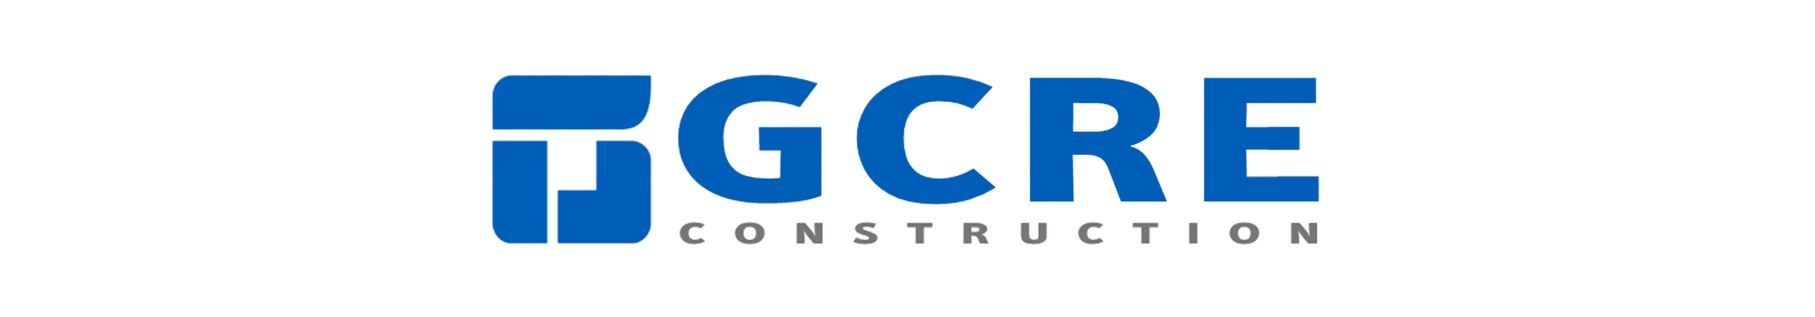 GCRE Construction Announces Promotion of Tiffany Hoang to Vice President of Construction for the Dallas Region